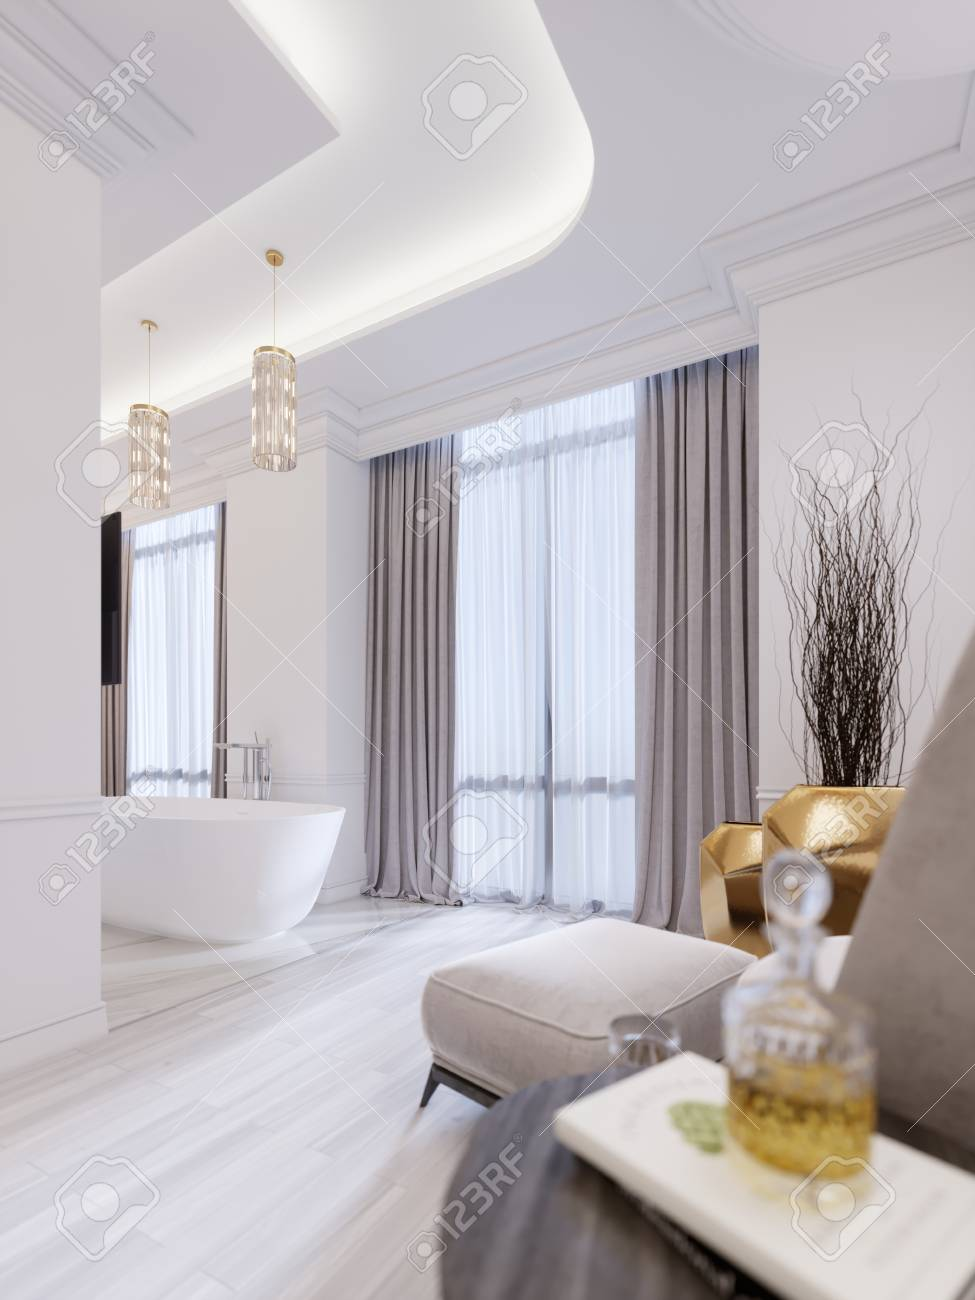 Modern Bathroom With A Window Hanging Chandelier Curtains Stock Photo Picture And Royalty Free Image Image 113934912